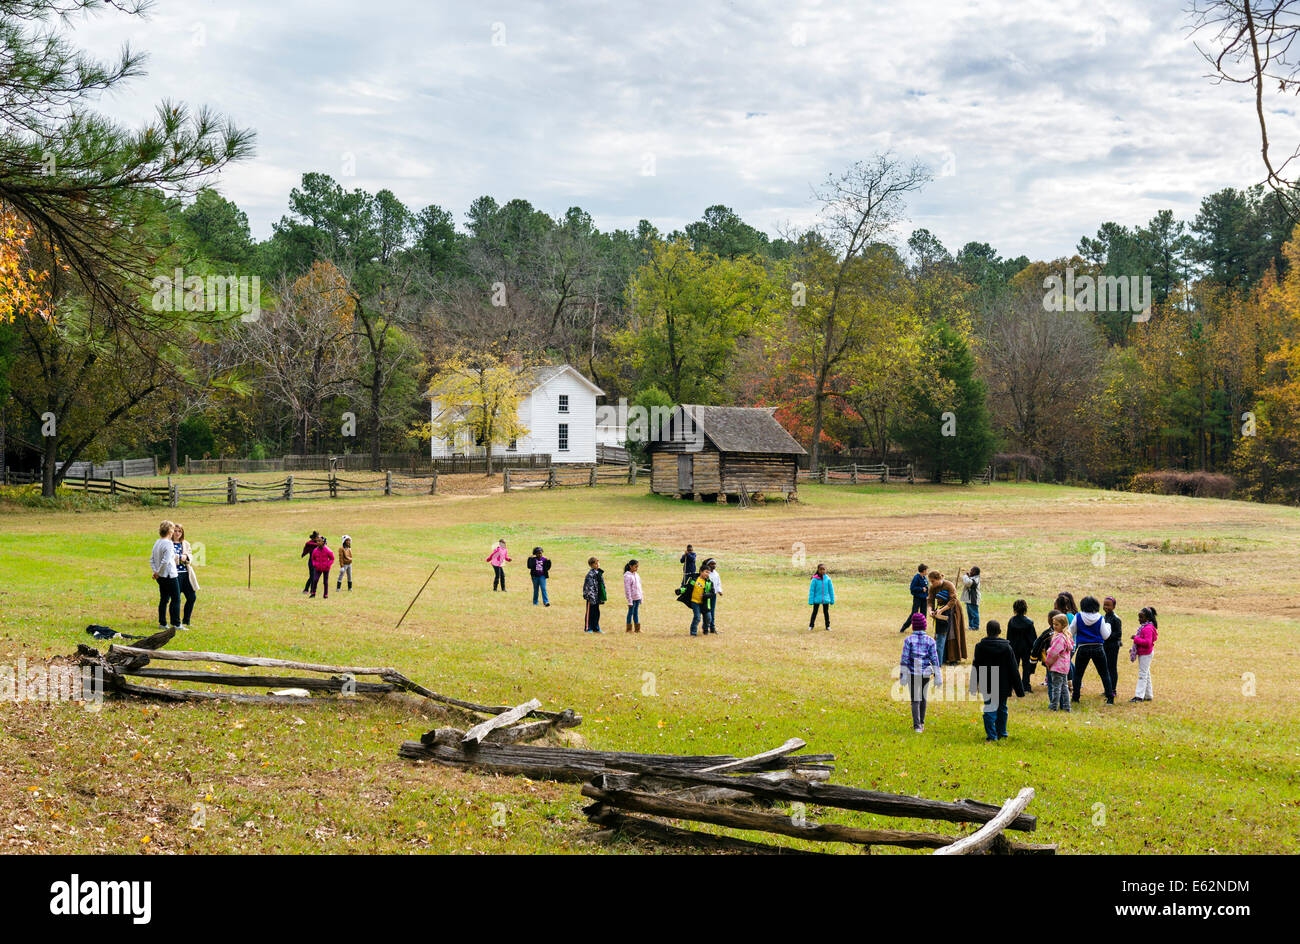 School party on a visit to the Duke Homestead and Tobacco Museum, Durham, North Carolina, USA - Stock Image